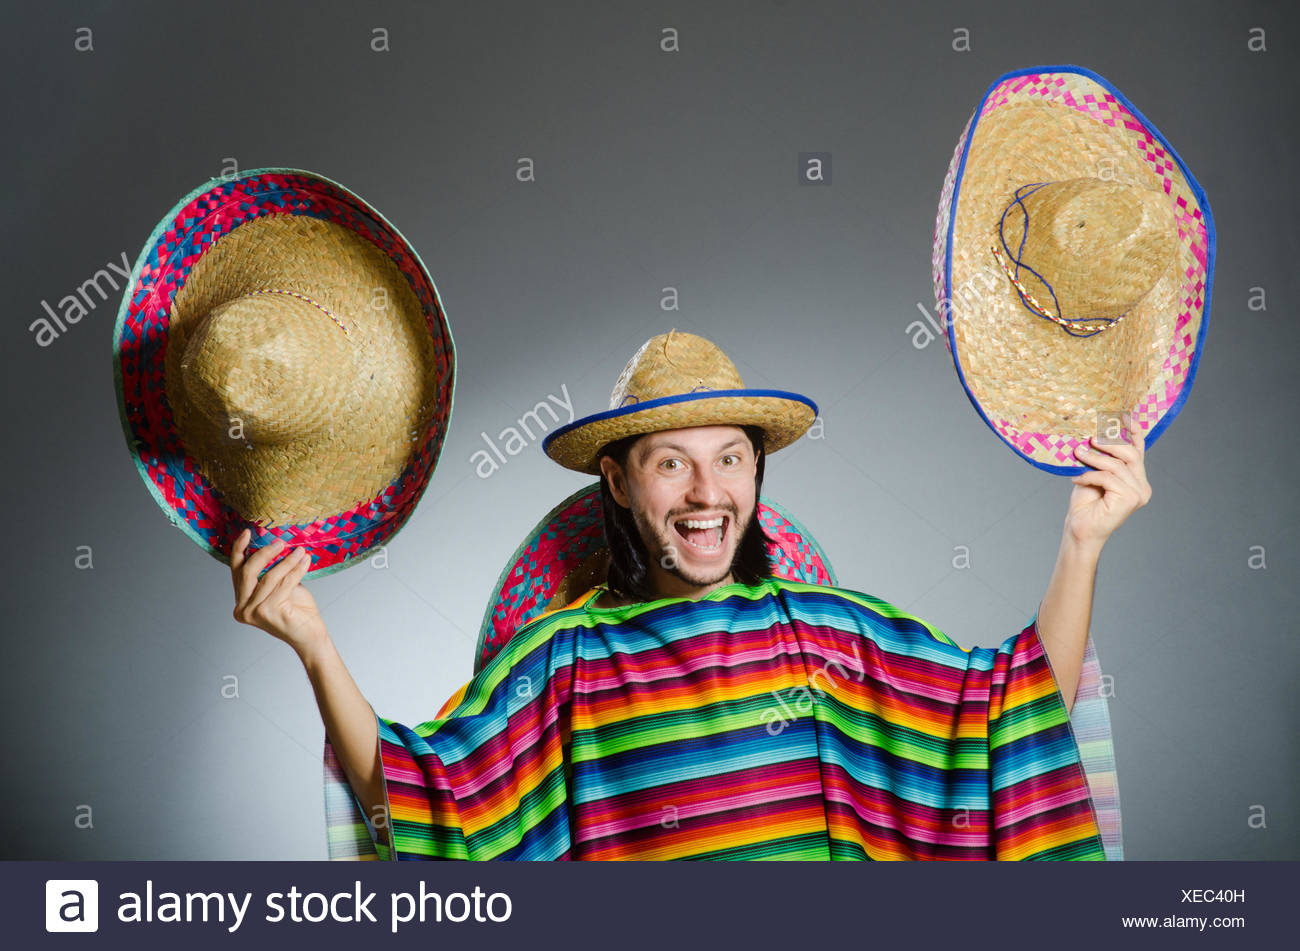 Funny Mexican Wearing Sombrero Hat Stock Photos   Funny Mexican ... b18e461aac5